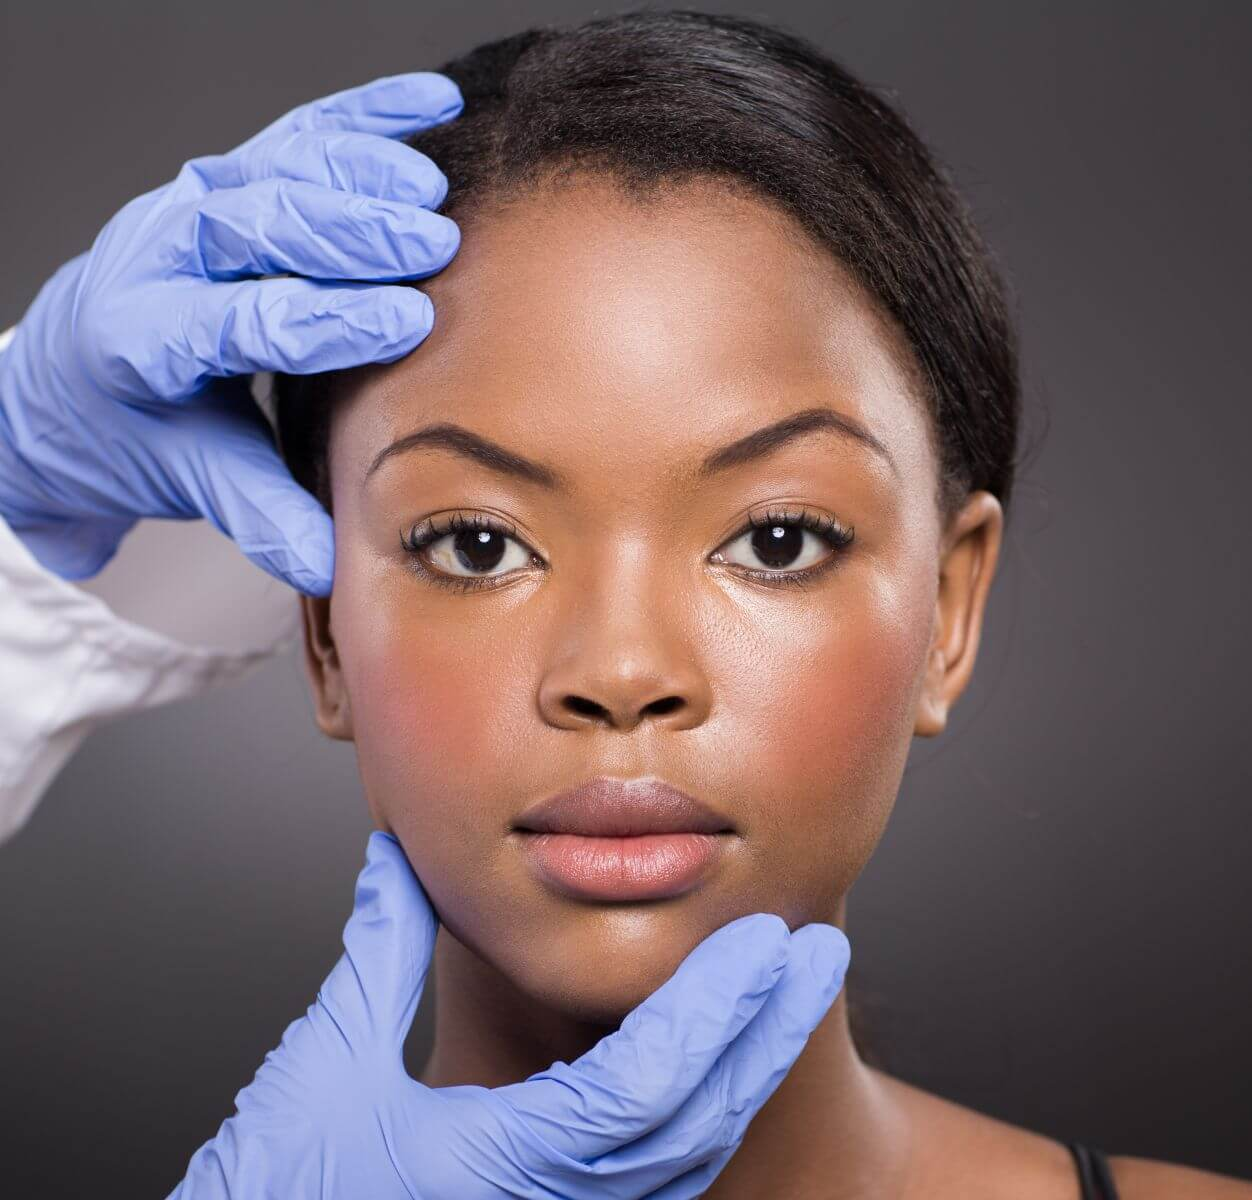 clear skin Tampa Facials for men and women with darker skin tone who struggle with acne, acne scars, need a peel treatment for darker skin pigment isuues